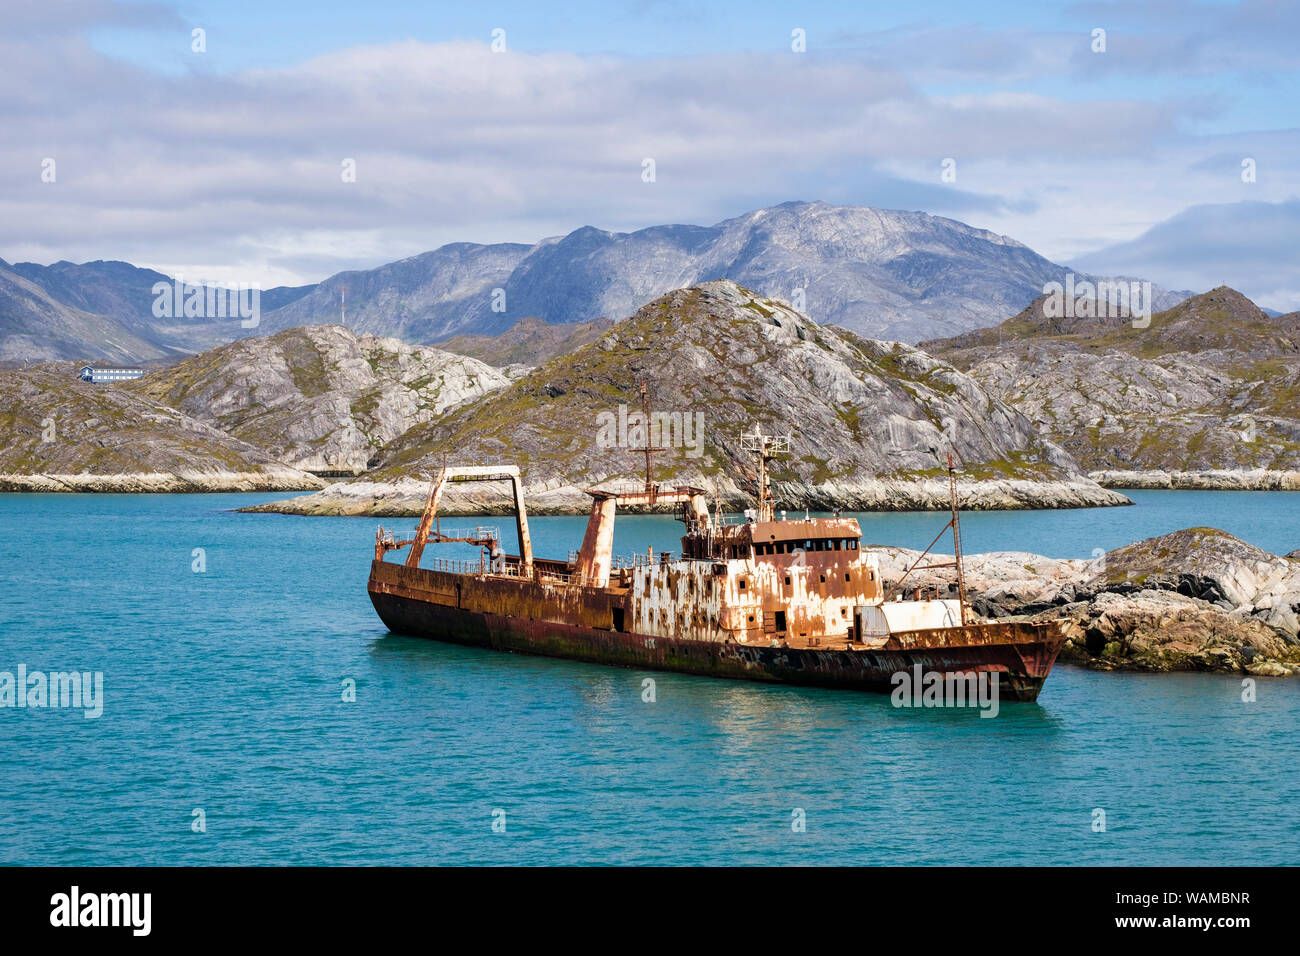 Rusting abandoned old ship at sea in fjord near Paamiut (Frederikshåb), Sermersooq, Greenland Stock Photo